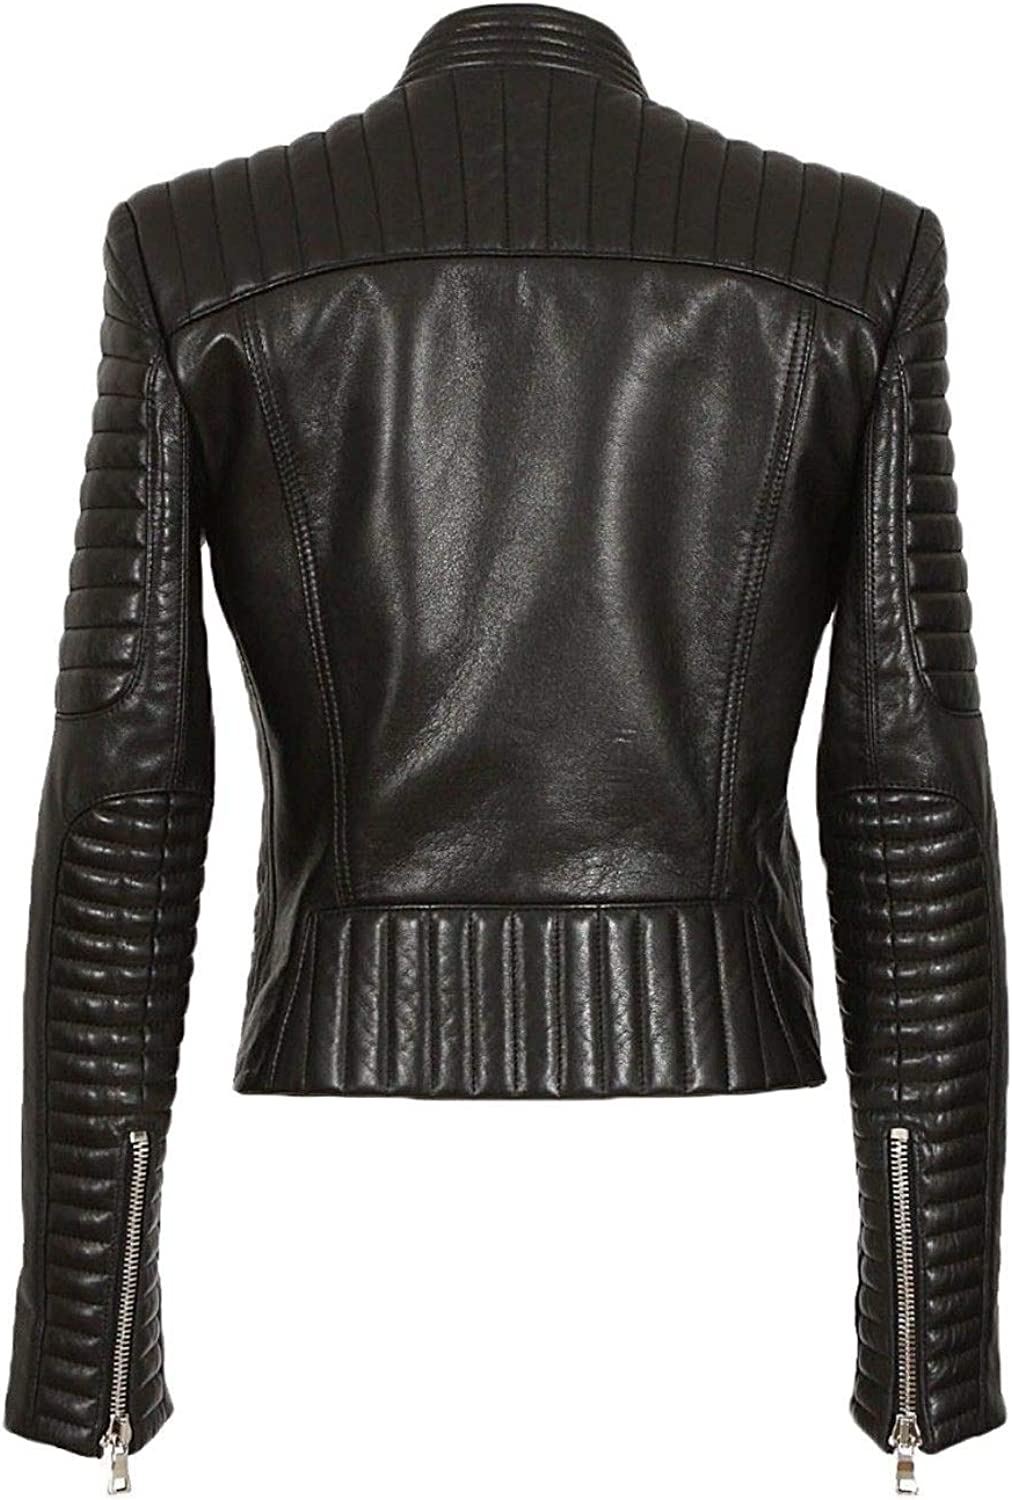 Pristine Leather Womens Lambskin Leather Motorcycle Rider Biker Racer Black Jacket WJ-172